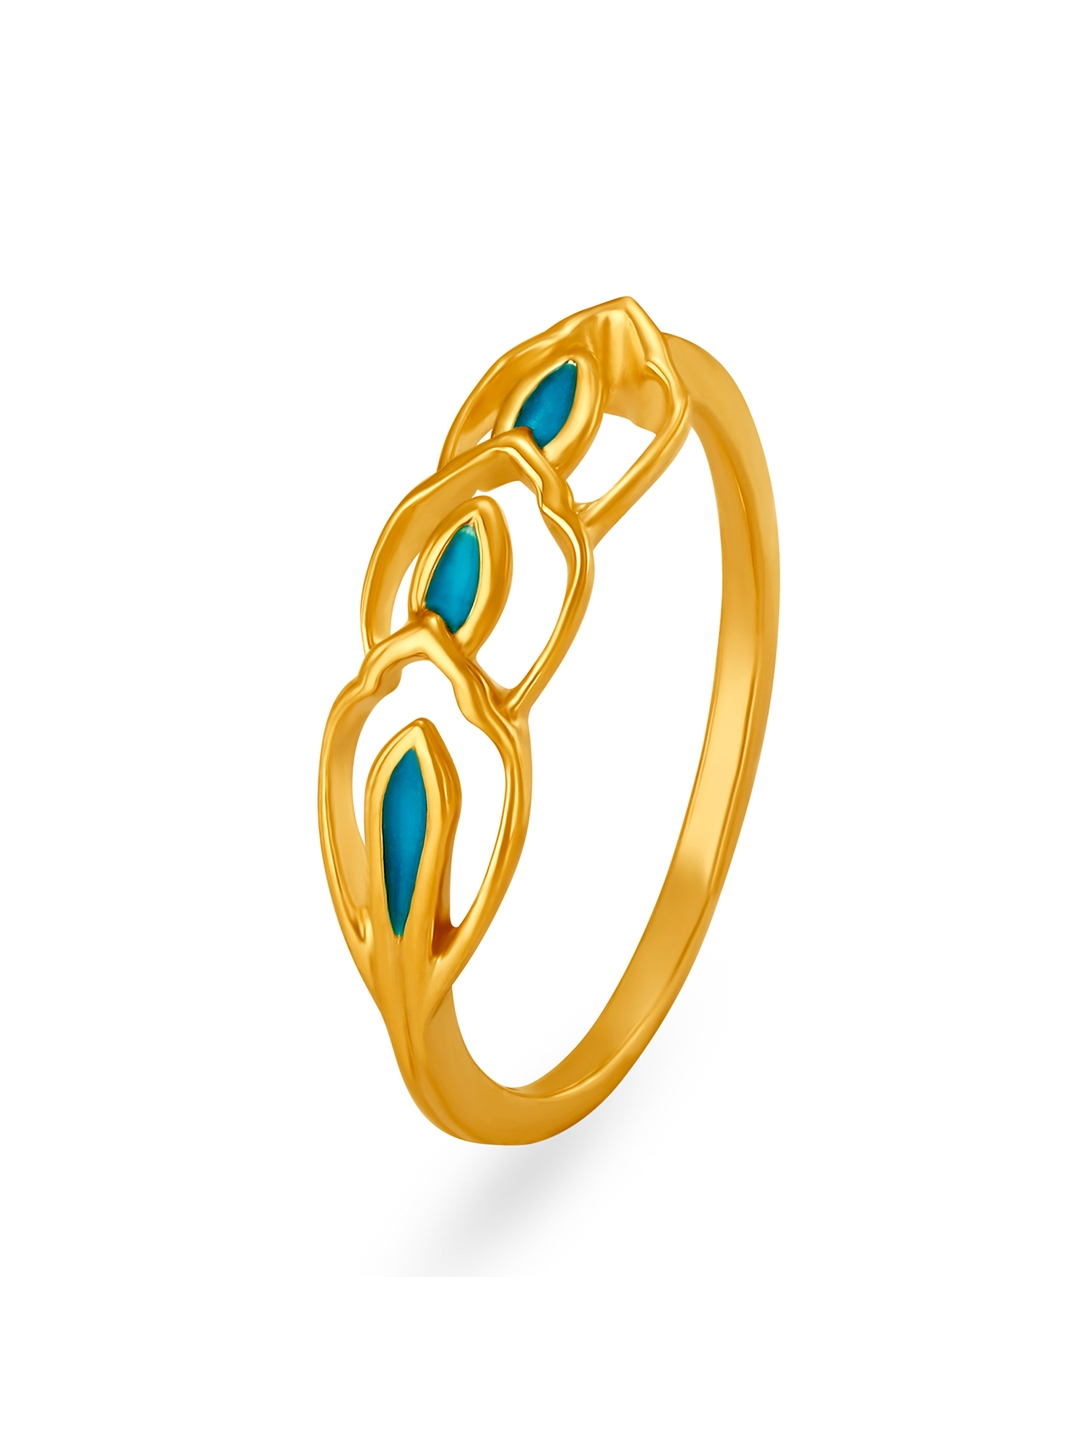 Mia by Tanishq 14KT Yellow Gold Finger Ring